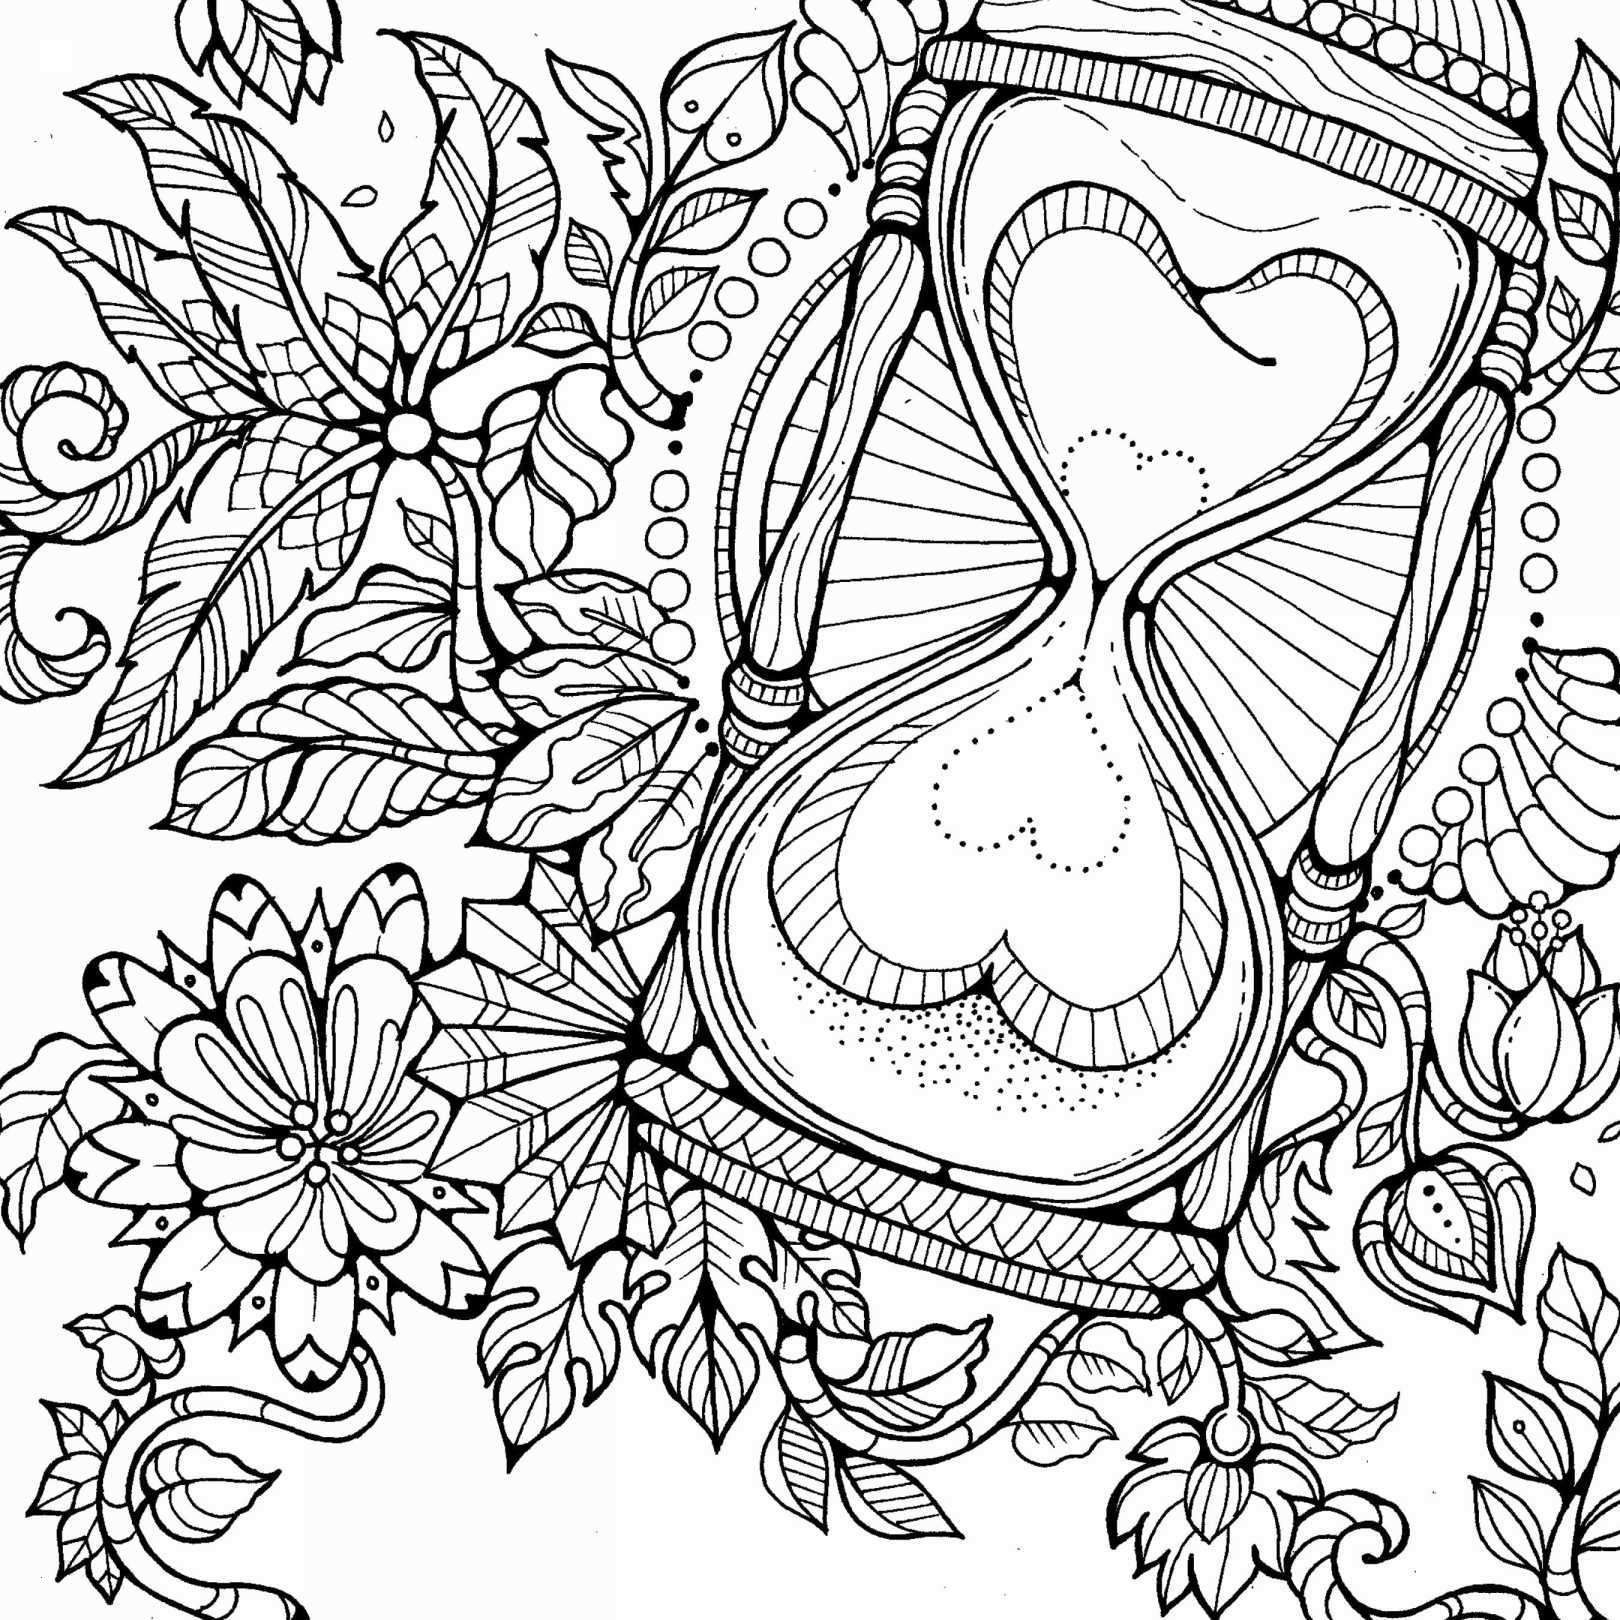 religious coloring pages for kids Collection-Printable Christian Coloring Pages for Adults Fresh 29 Free Coloring Pages Christmas Printable Printable Christian 6-b